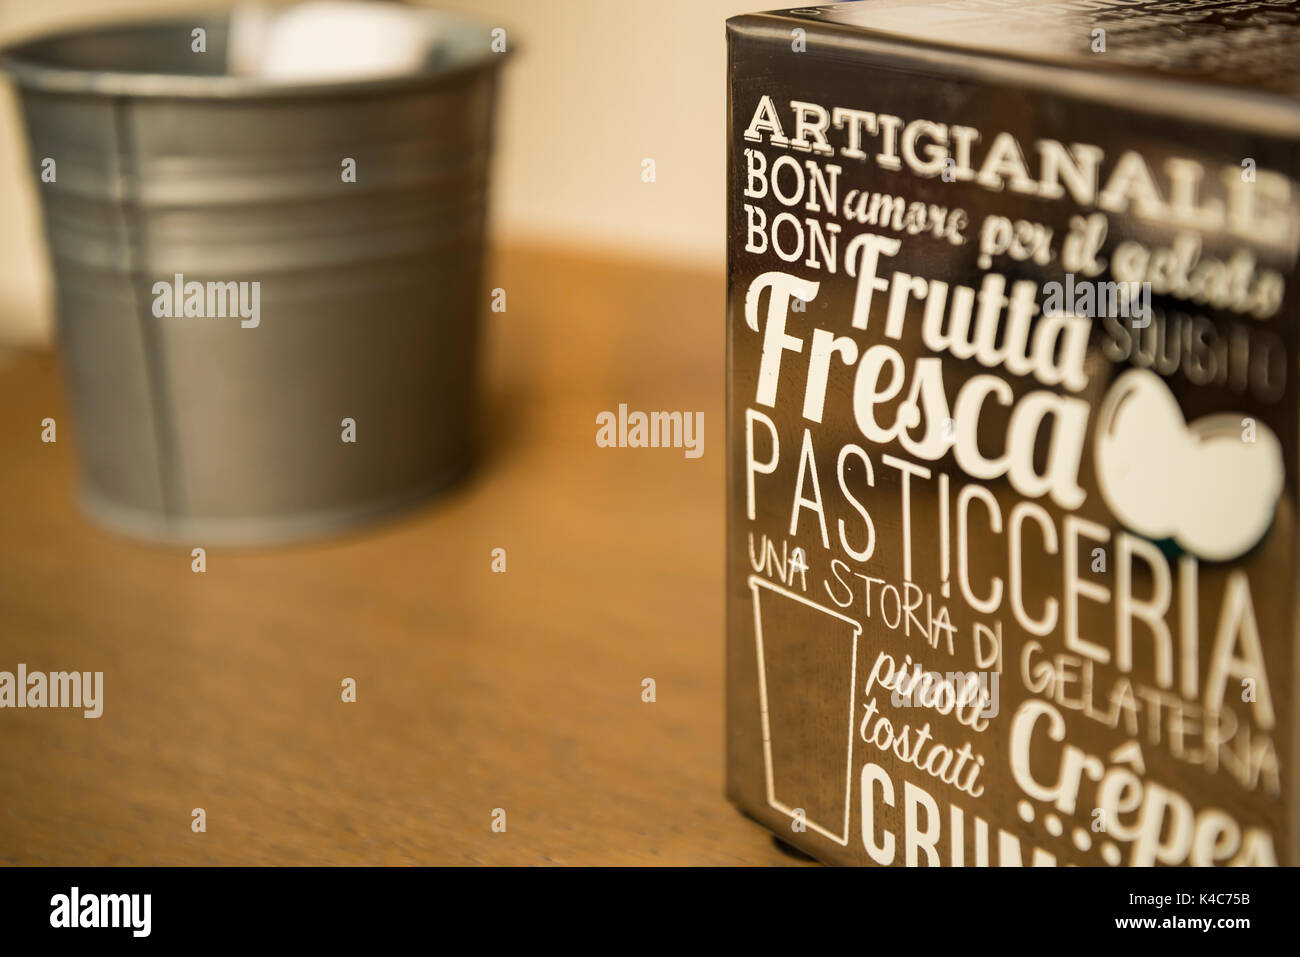 Paper napkin dispenser - Stock Image